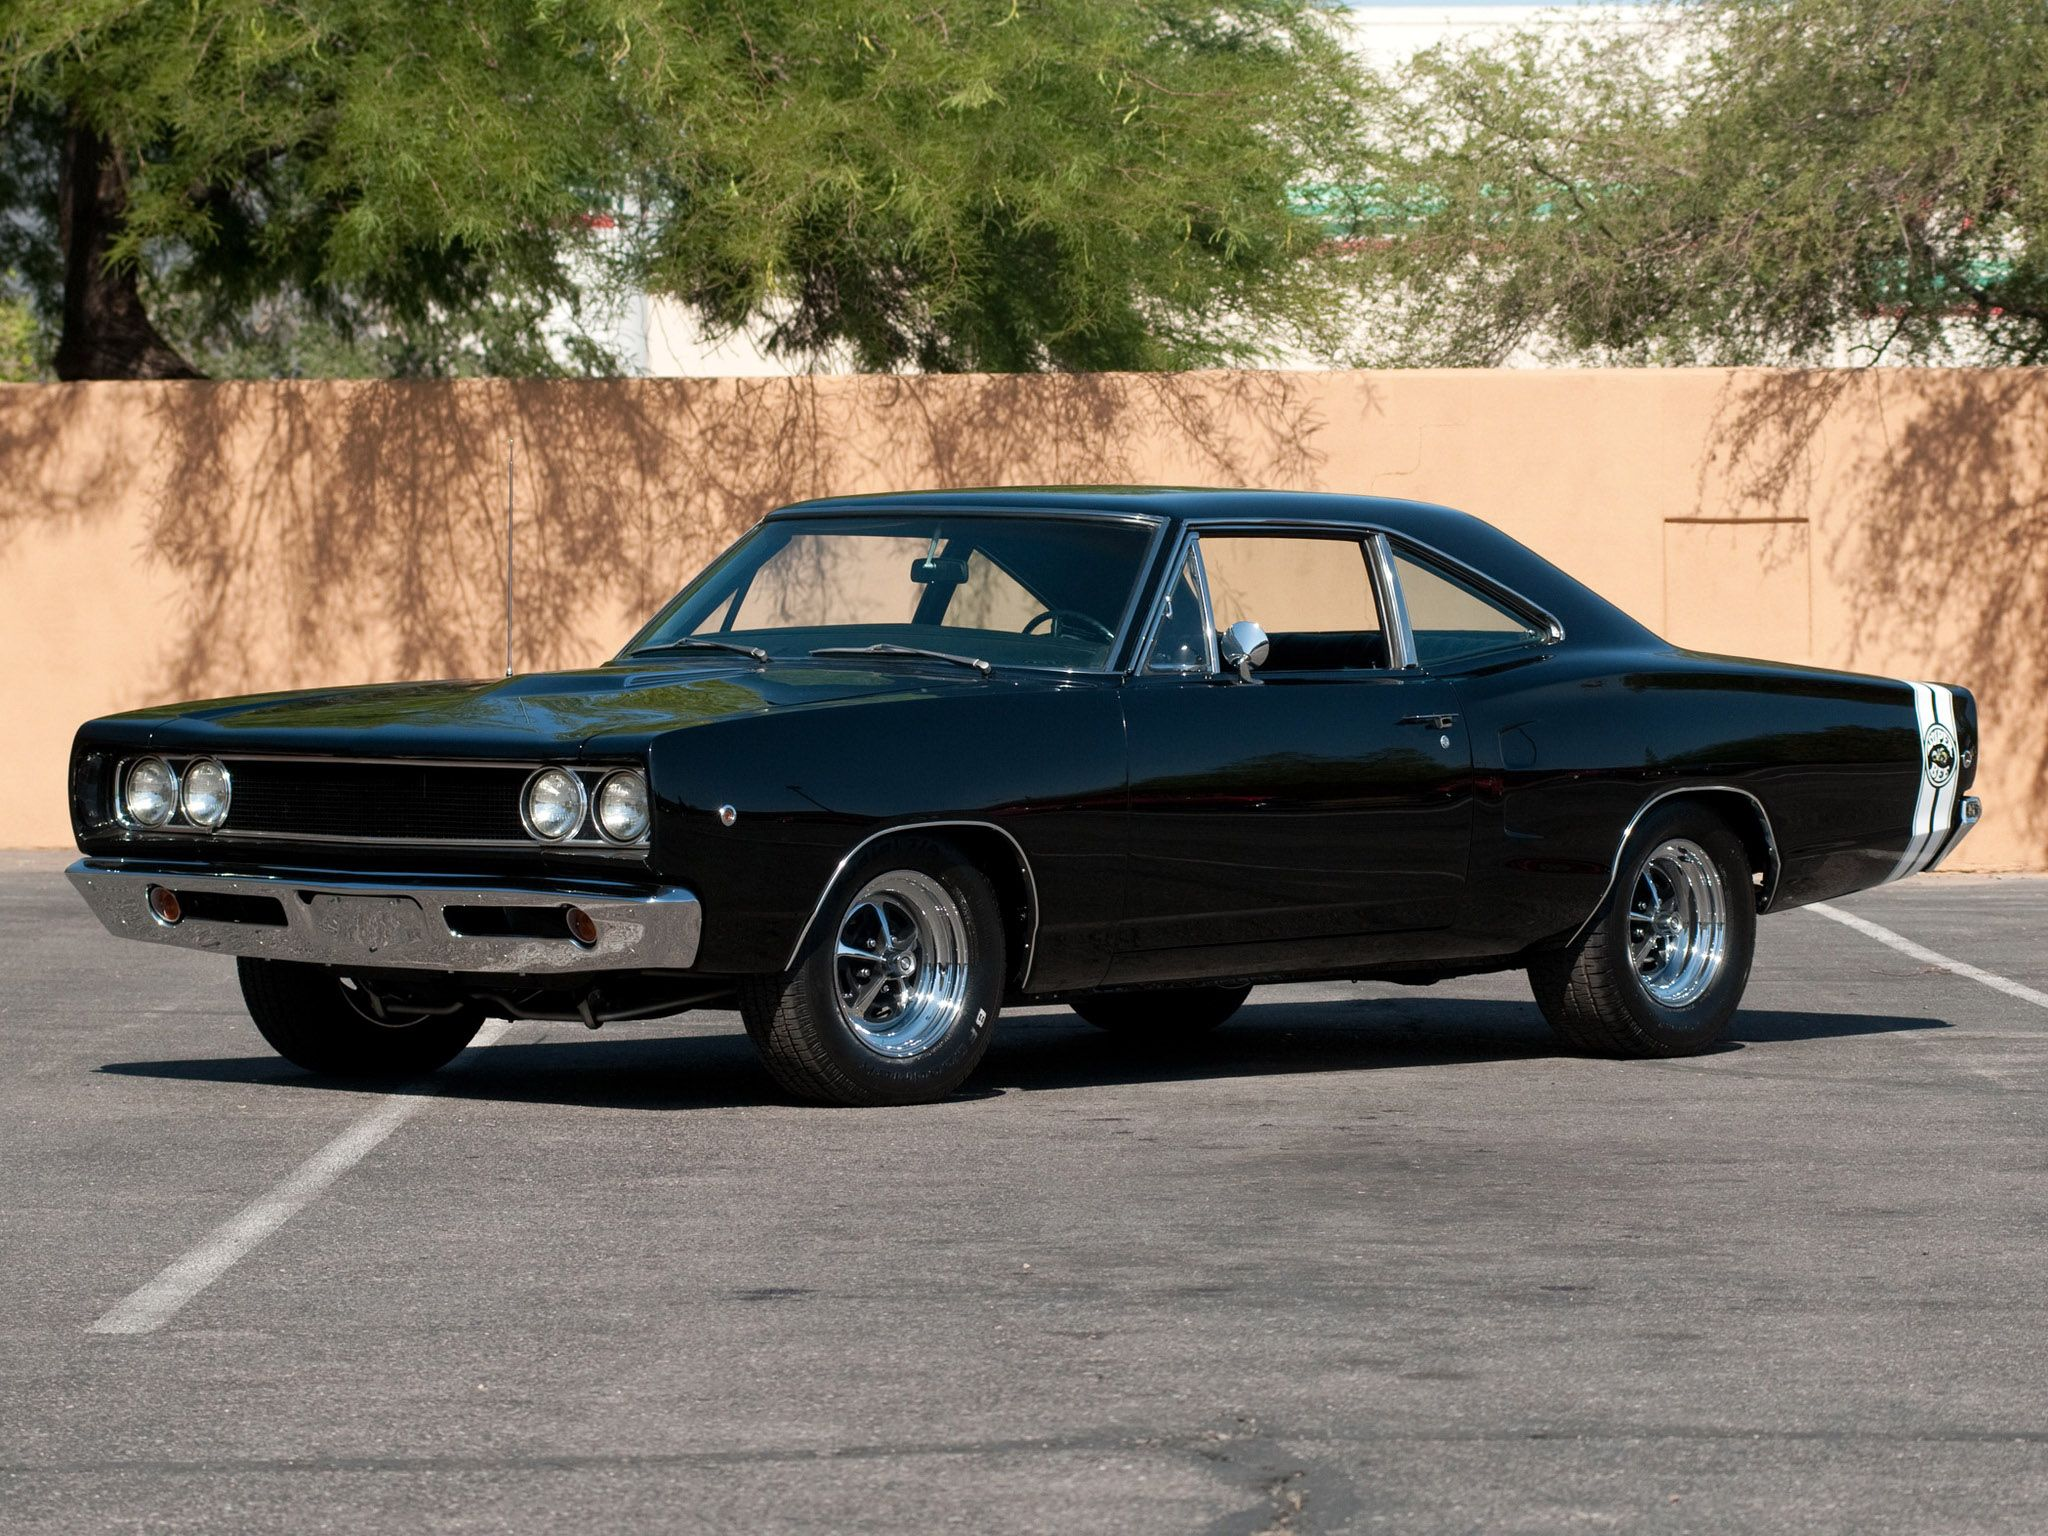 1968 Dodge Coronet Super Bee Classic Muscle Wallpaper 2048x1536 107732 Wallpaperup Dodge Super Bee Dodge Muscle Cars Classic Cars Muscle